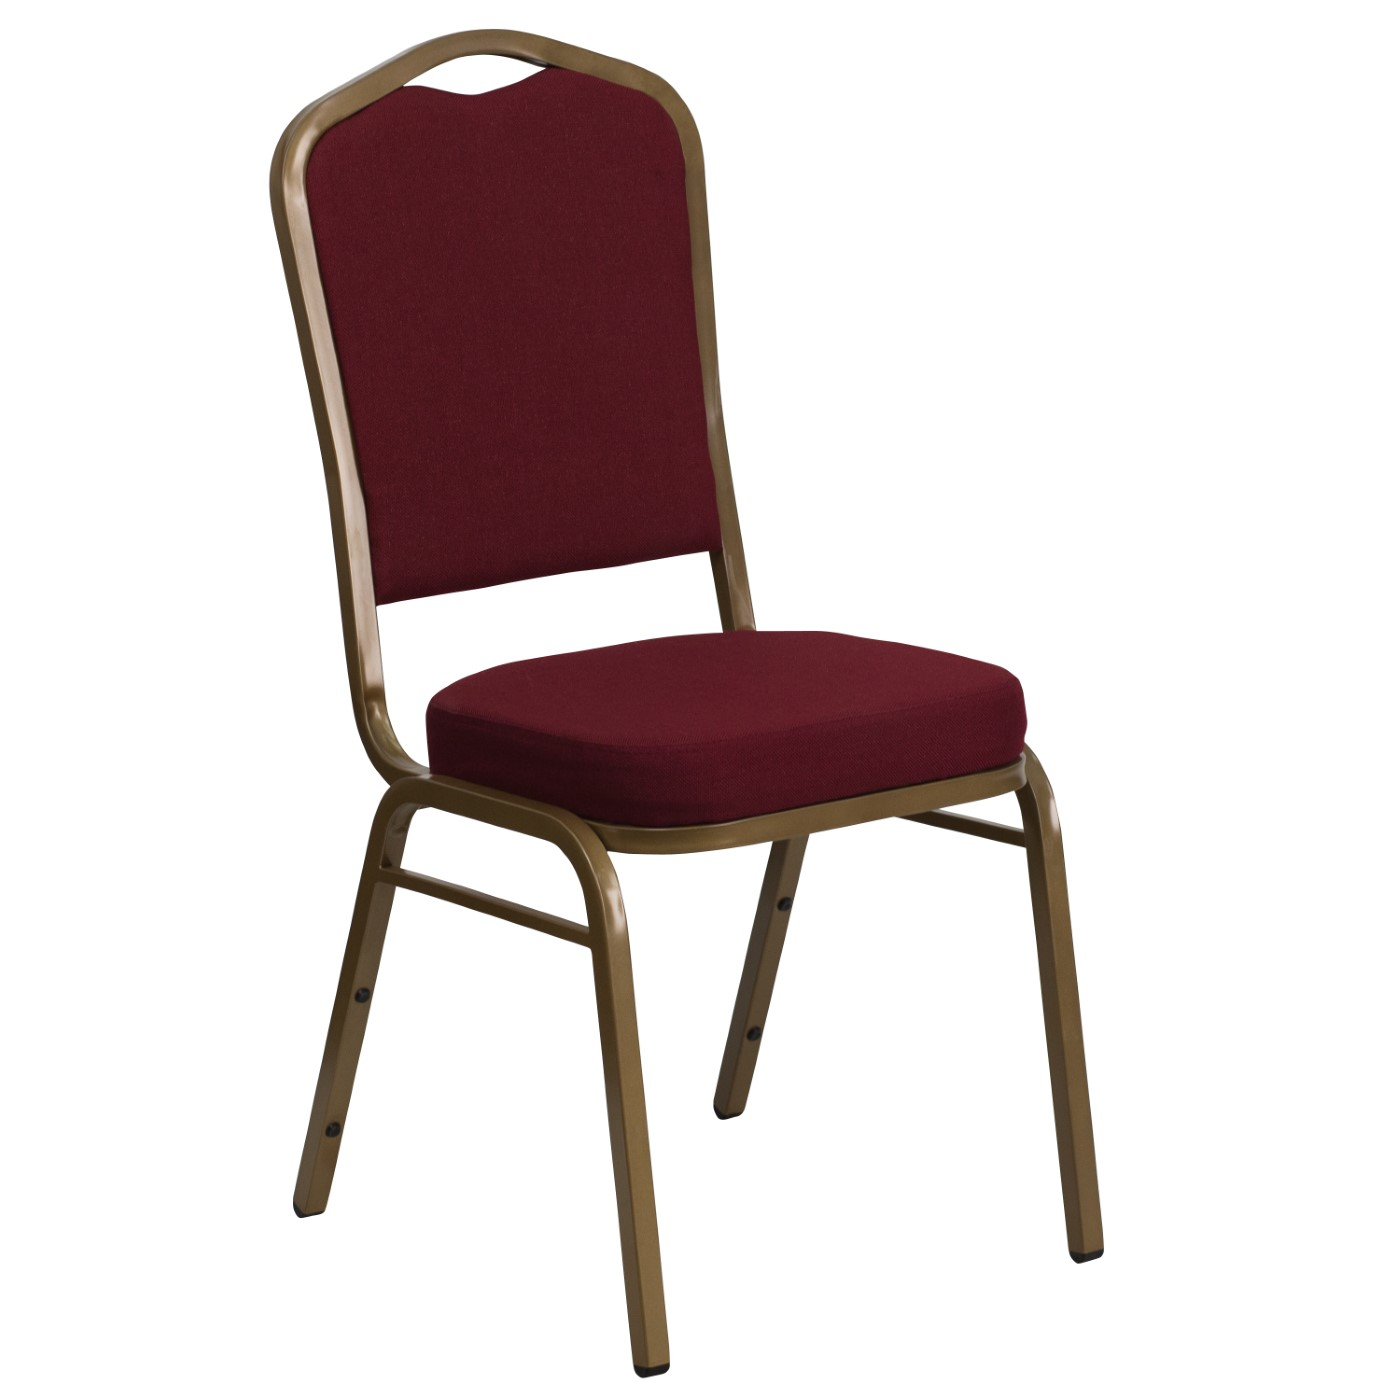 TOUGH ENOUGH Series Crown Back Stacking Banquet Chair in Burgundy Fabric - Gold Frame